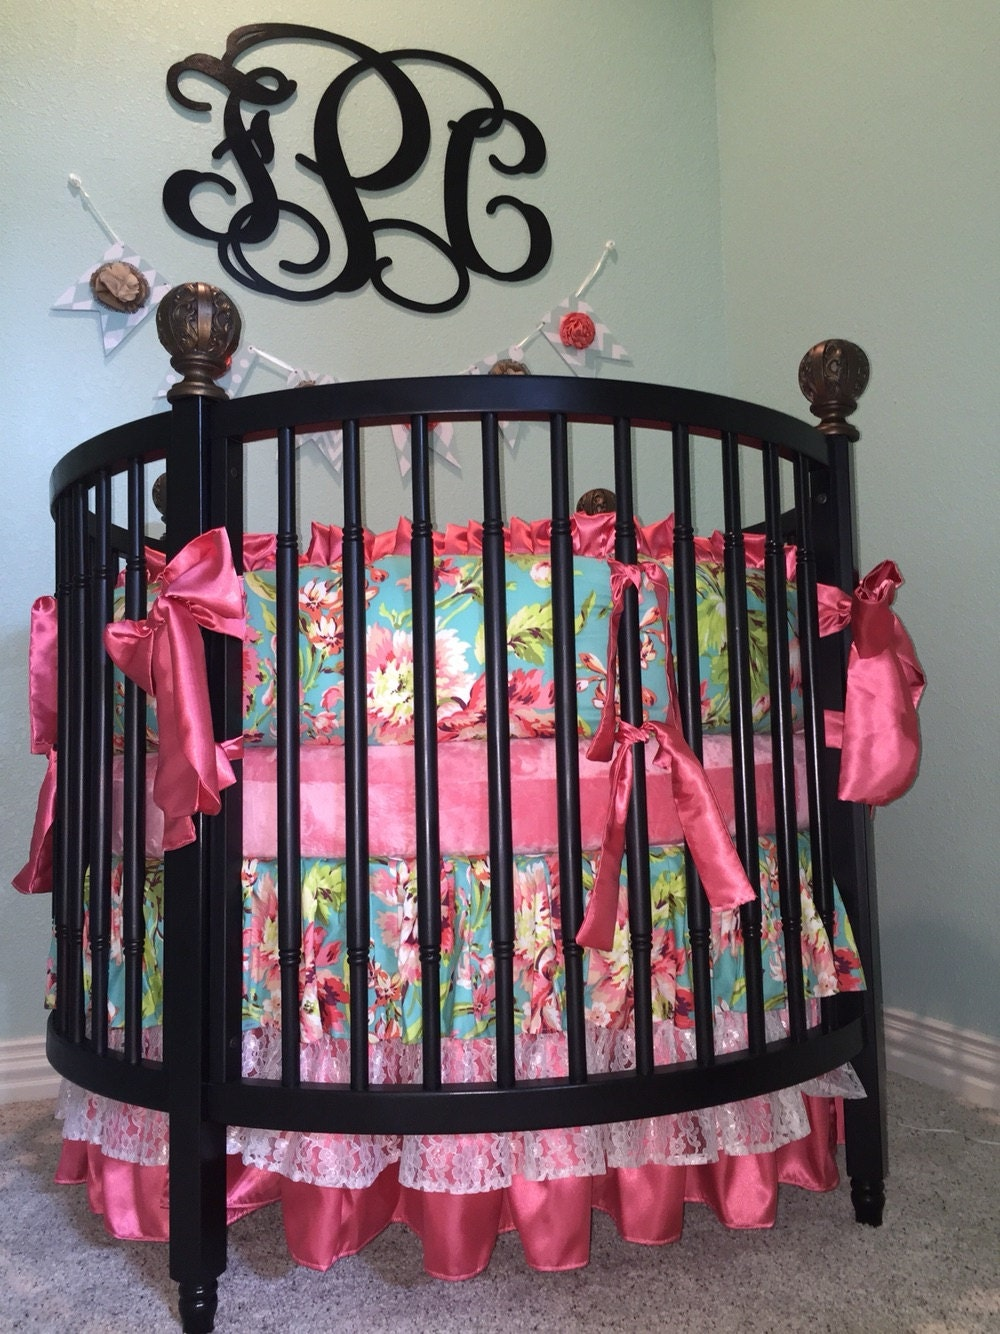 Baby cribs in ghana - Round Crib Bedding Round Crib Sets For Girls Round Baby Bedding Love Bliss Crib Sets Round Baby Girl Bedding Round Crib Bedding Sets